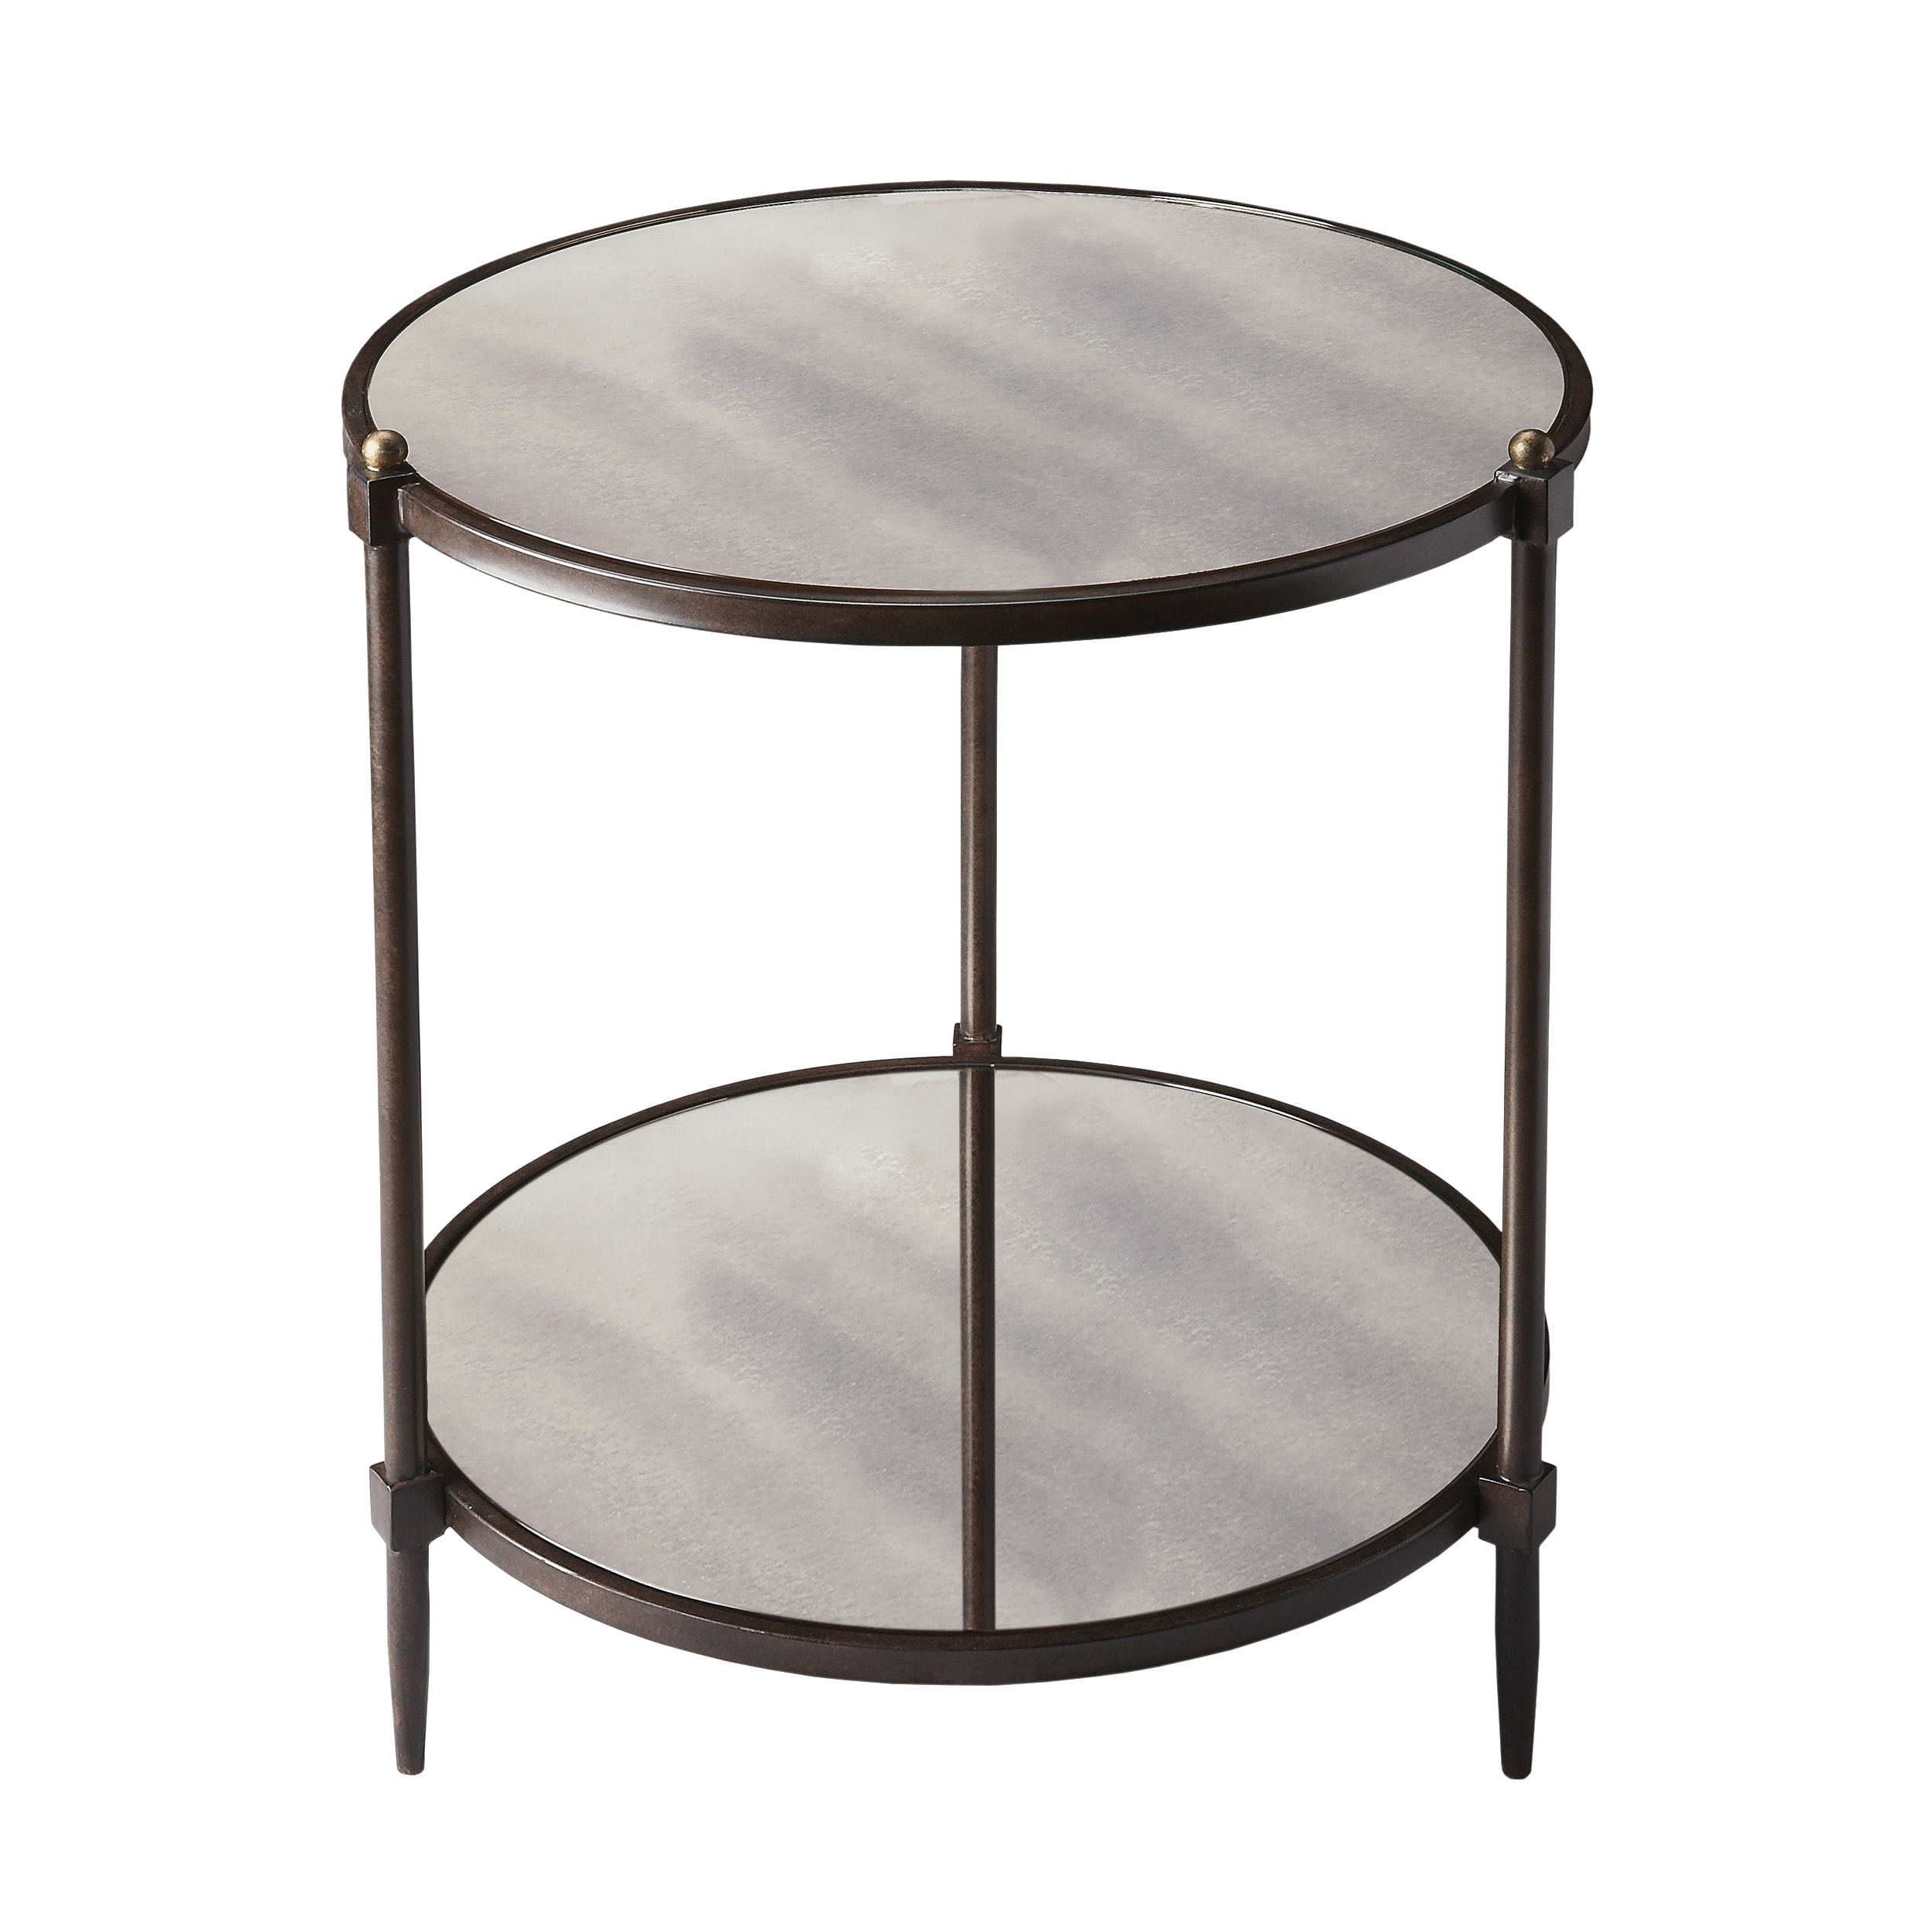 Shop Butler Peninsula Mirrored Round Side Table Gray Free